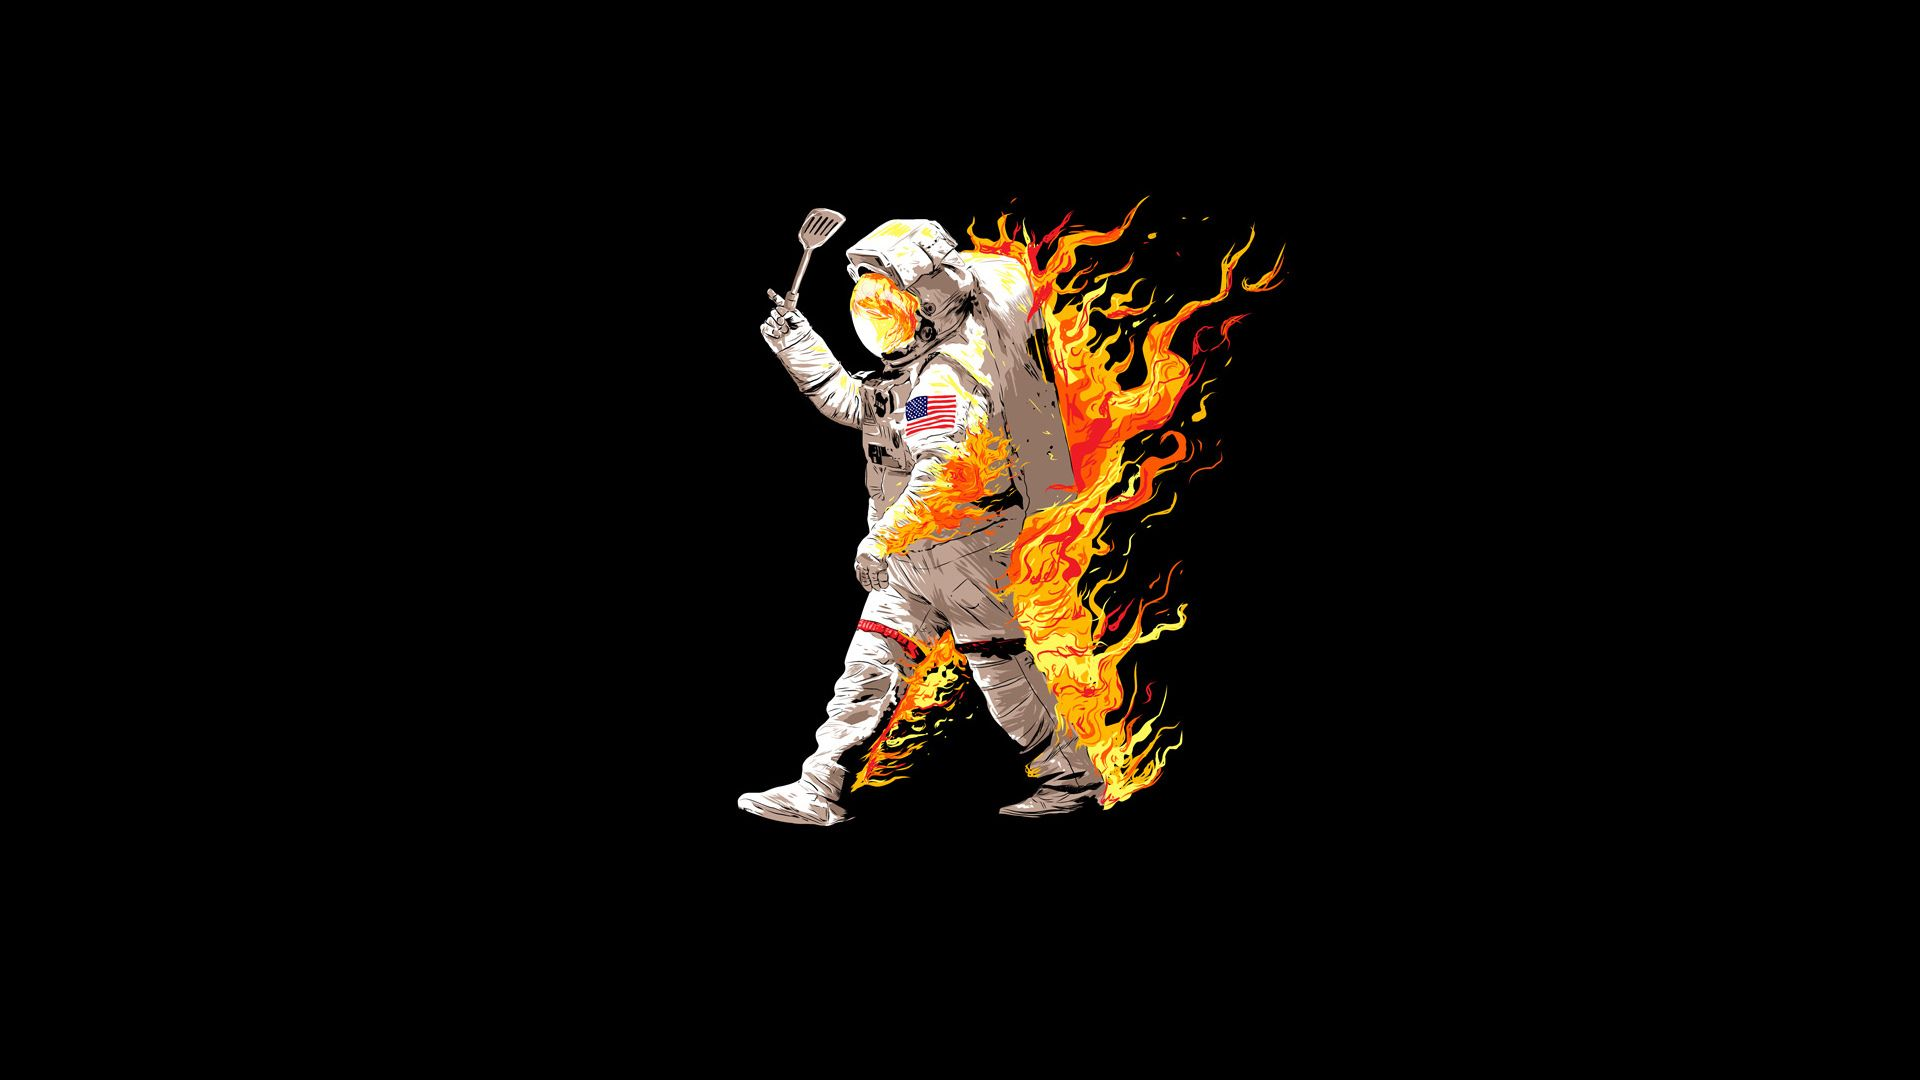 Funny Astronaut Wallpapers Top Free Funny Astronaut Backgrounds